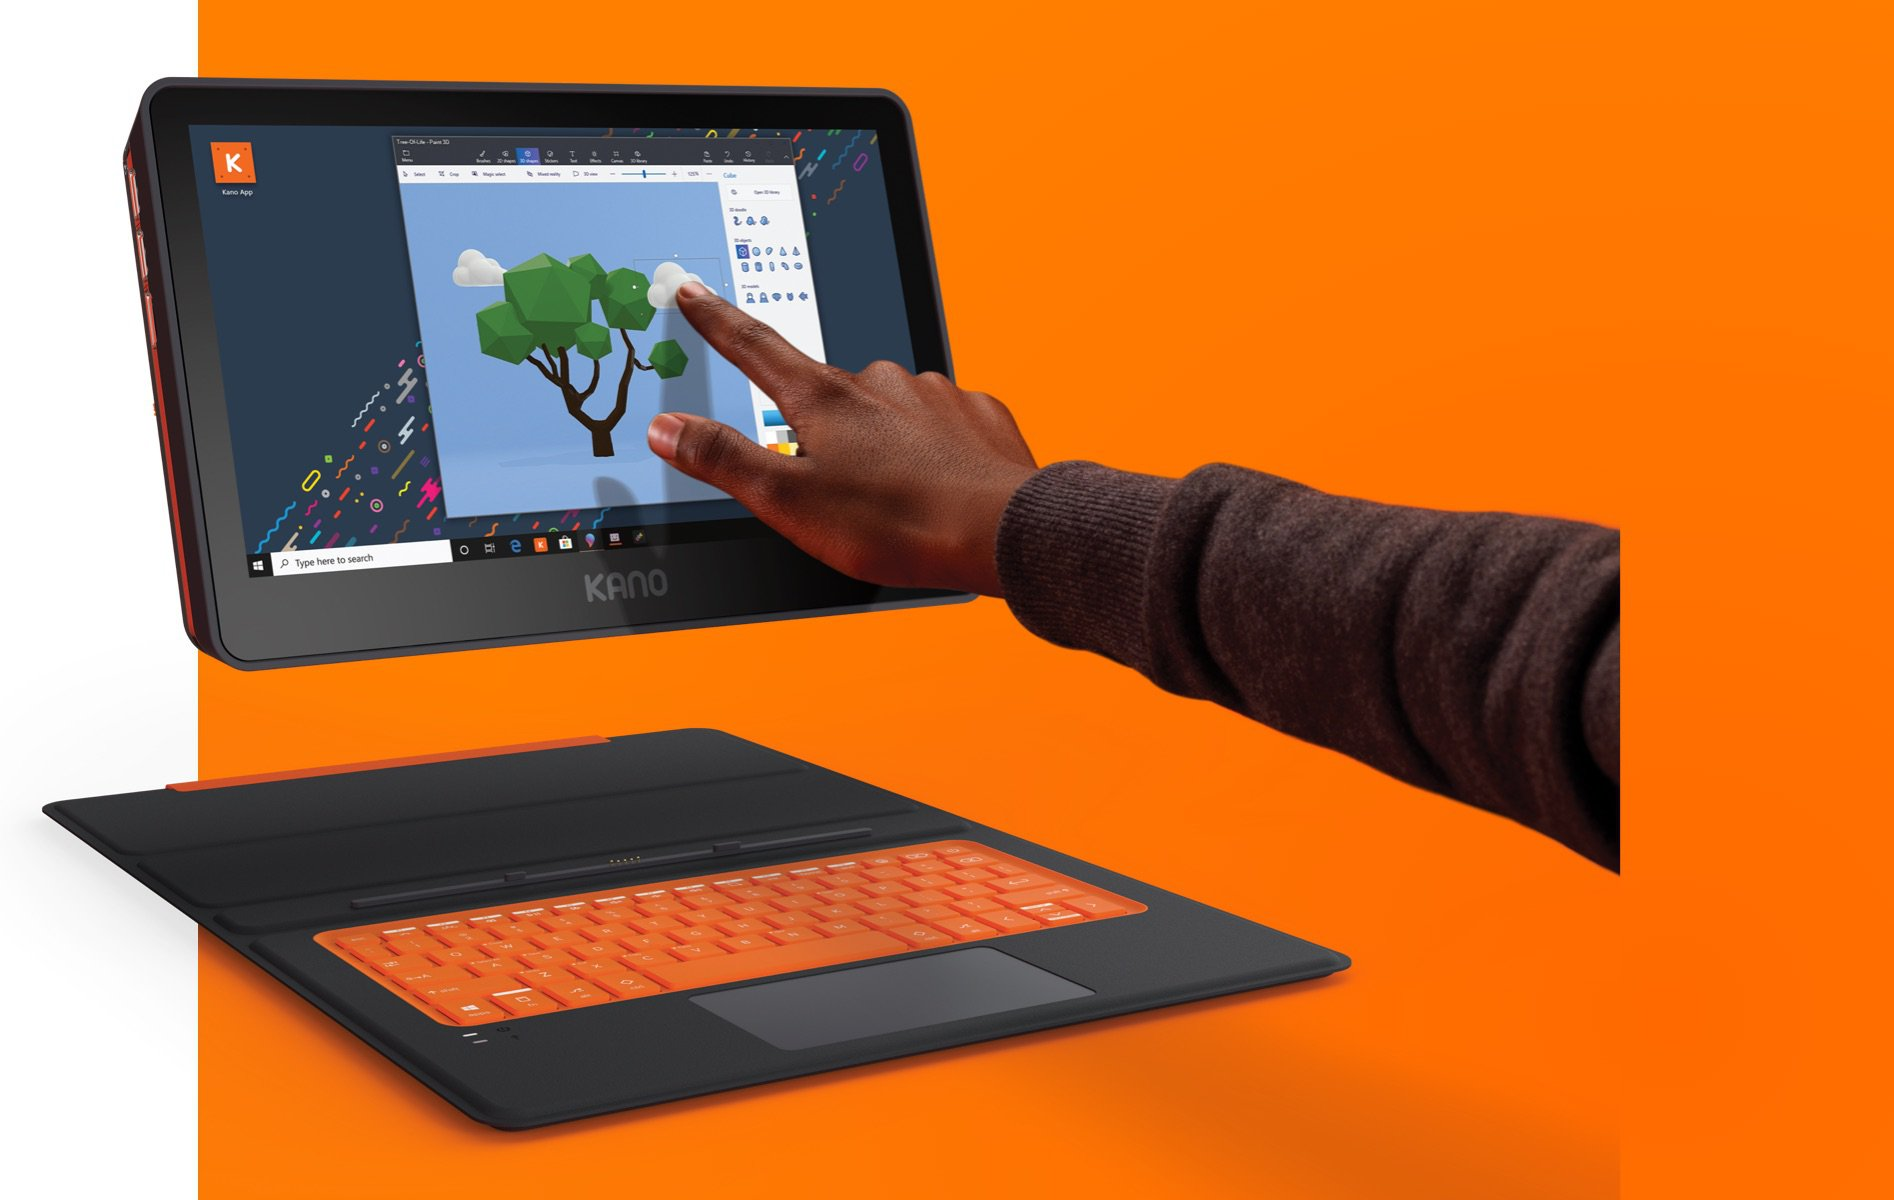 Laptop, , Personal computer, , , Kano, Computer, Game, Video Games, Display device, orange, Electronic device, Technology, Personal computer, Gadget, Computer, Touchpad, Input device, Output device, Multimedia, Laptop,多媒體,小工具,電子設備,技術,計算機,遊戲,視頻遊戲,顯示設備,個人計算機,筆記本電腦,輸入設備,觸摸板,橙色,輸出設備,卡諾